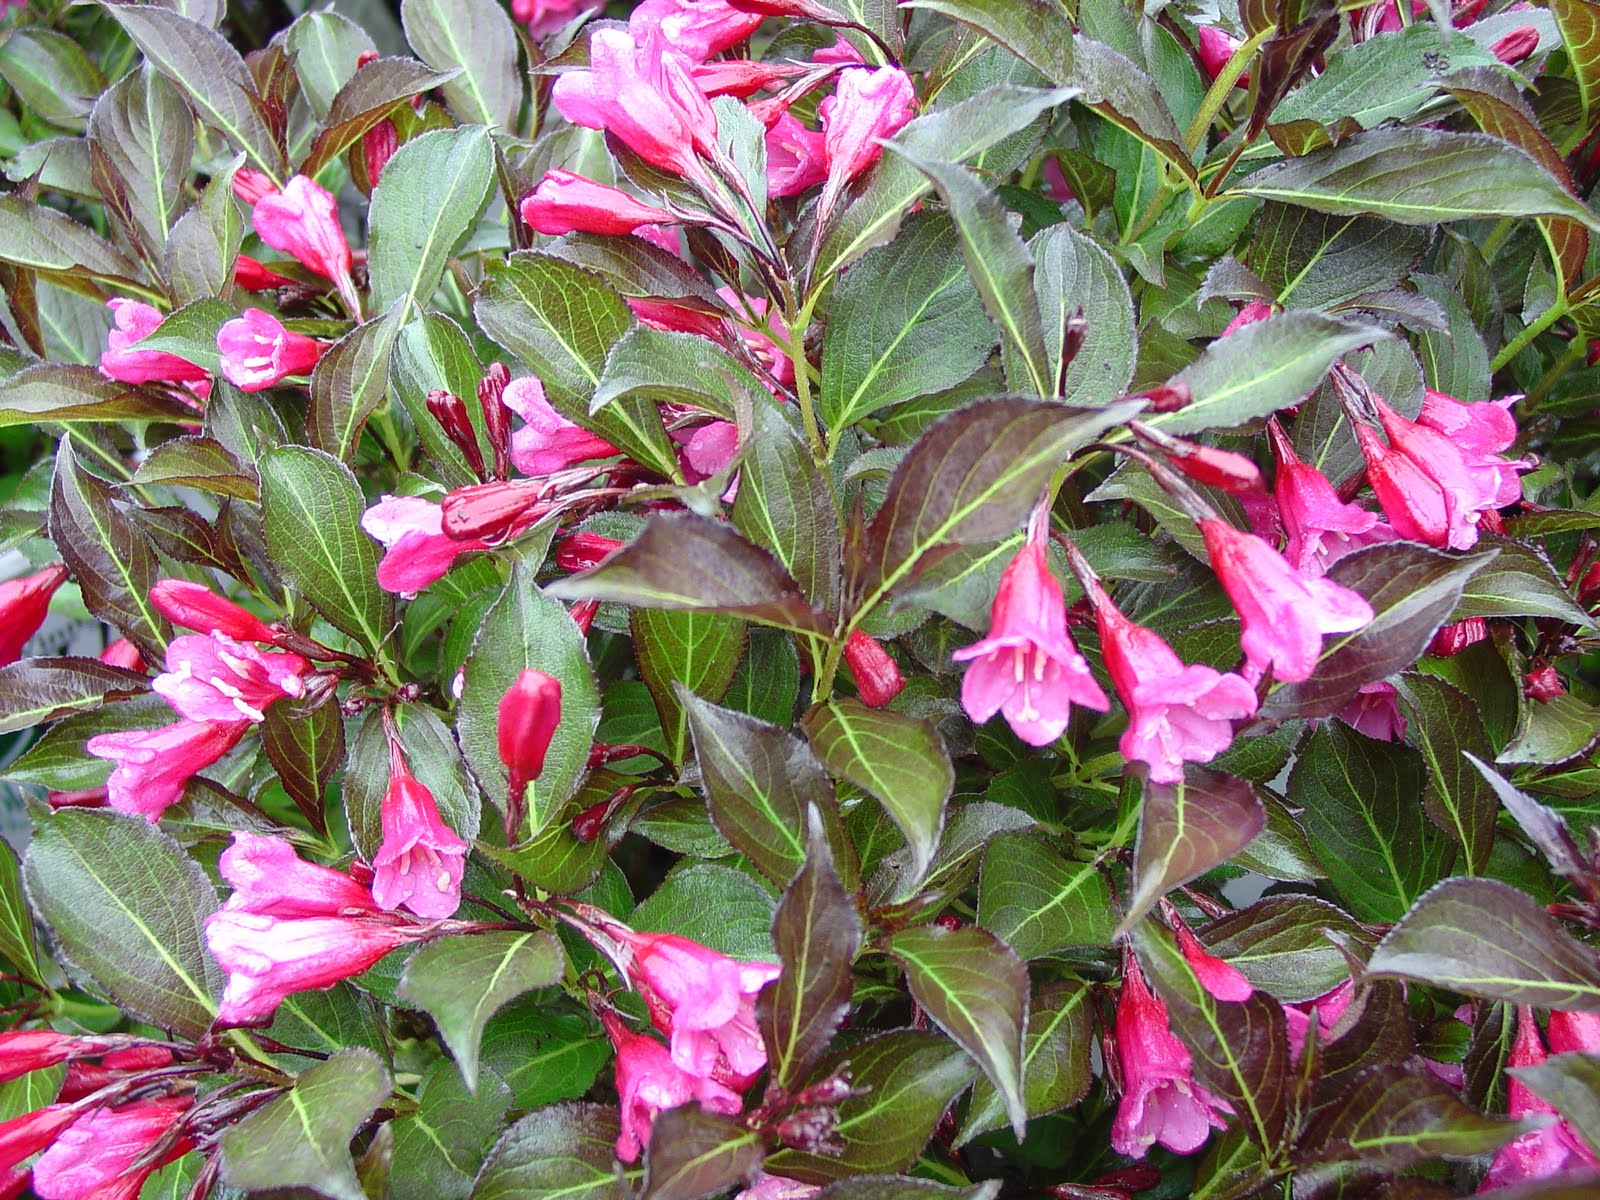 Summer Flower: Summer Flowering Shrubs